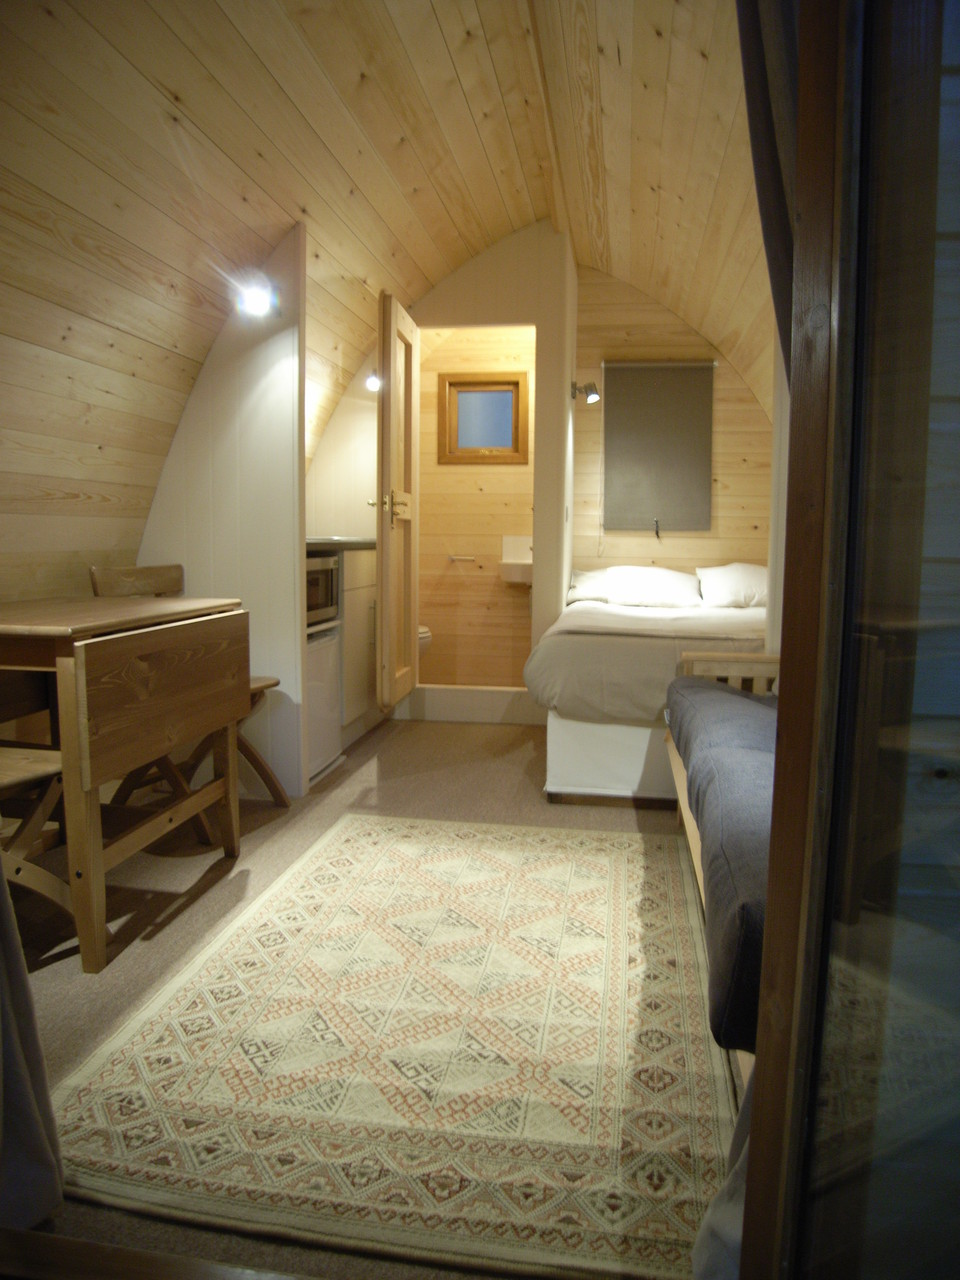 le pod avec salle de bain un mobil home en bois au design original. Black Bedroom Furniture Sets. Home Design Ideas